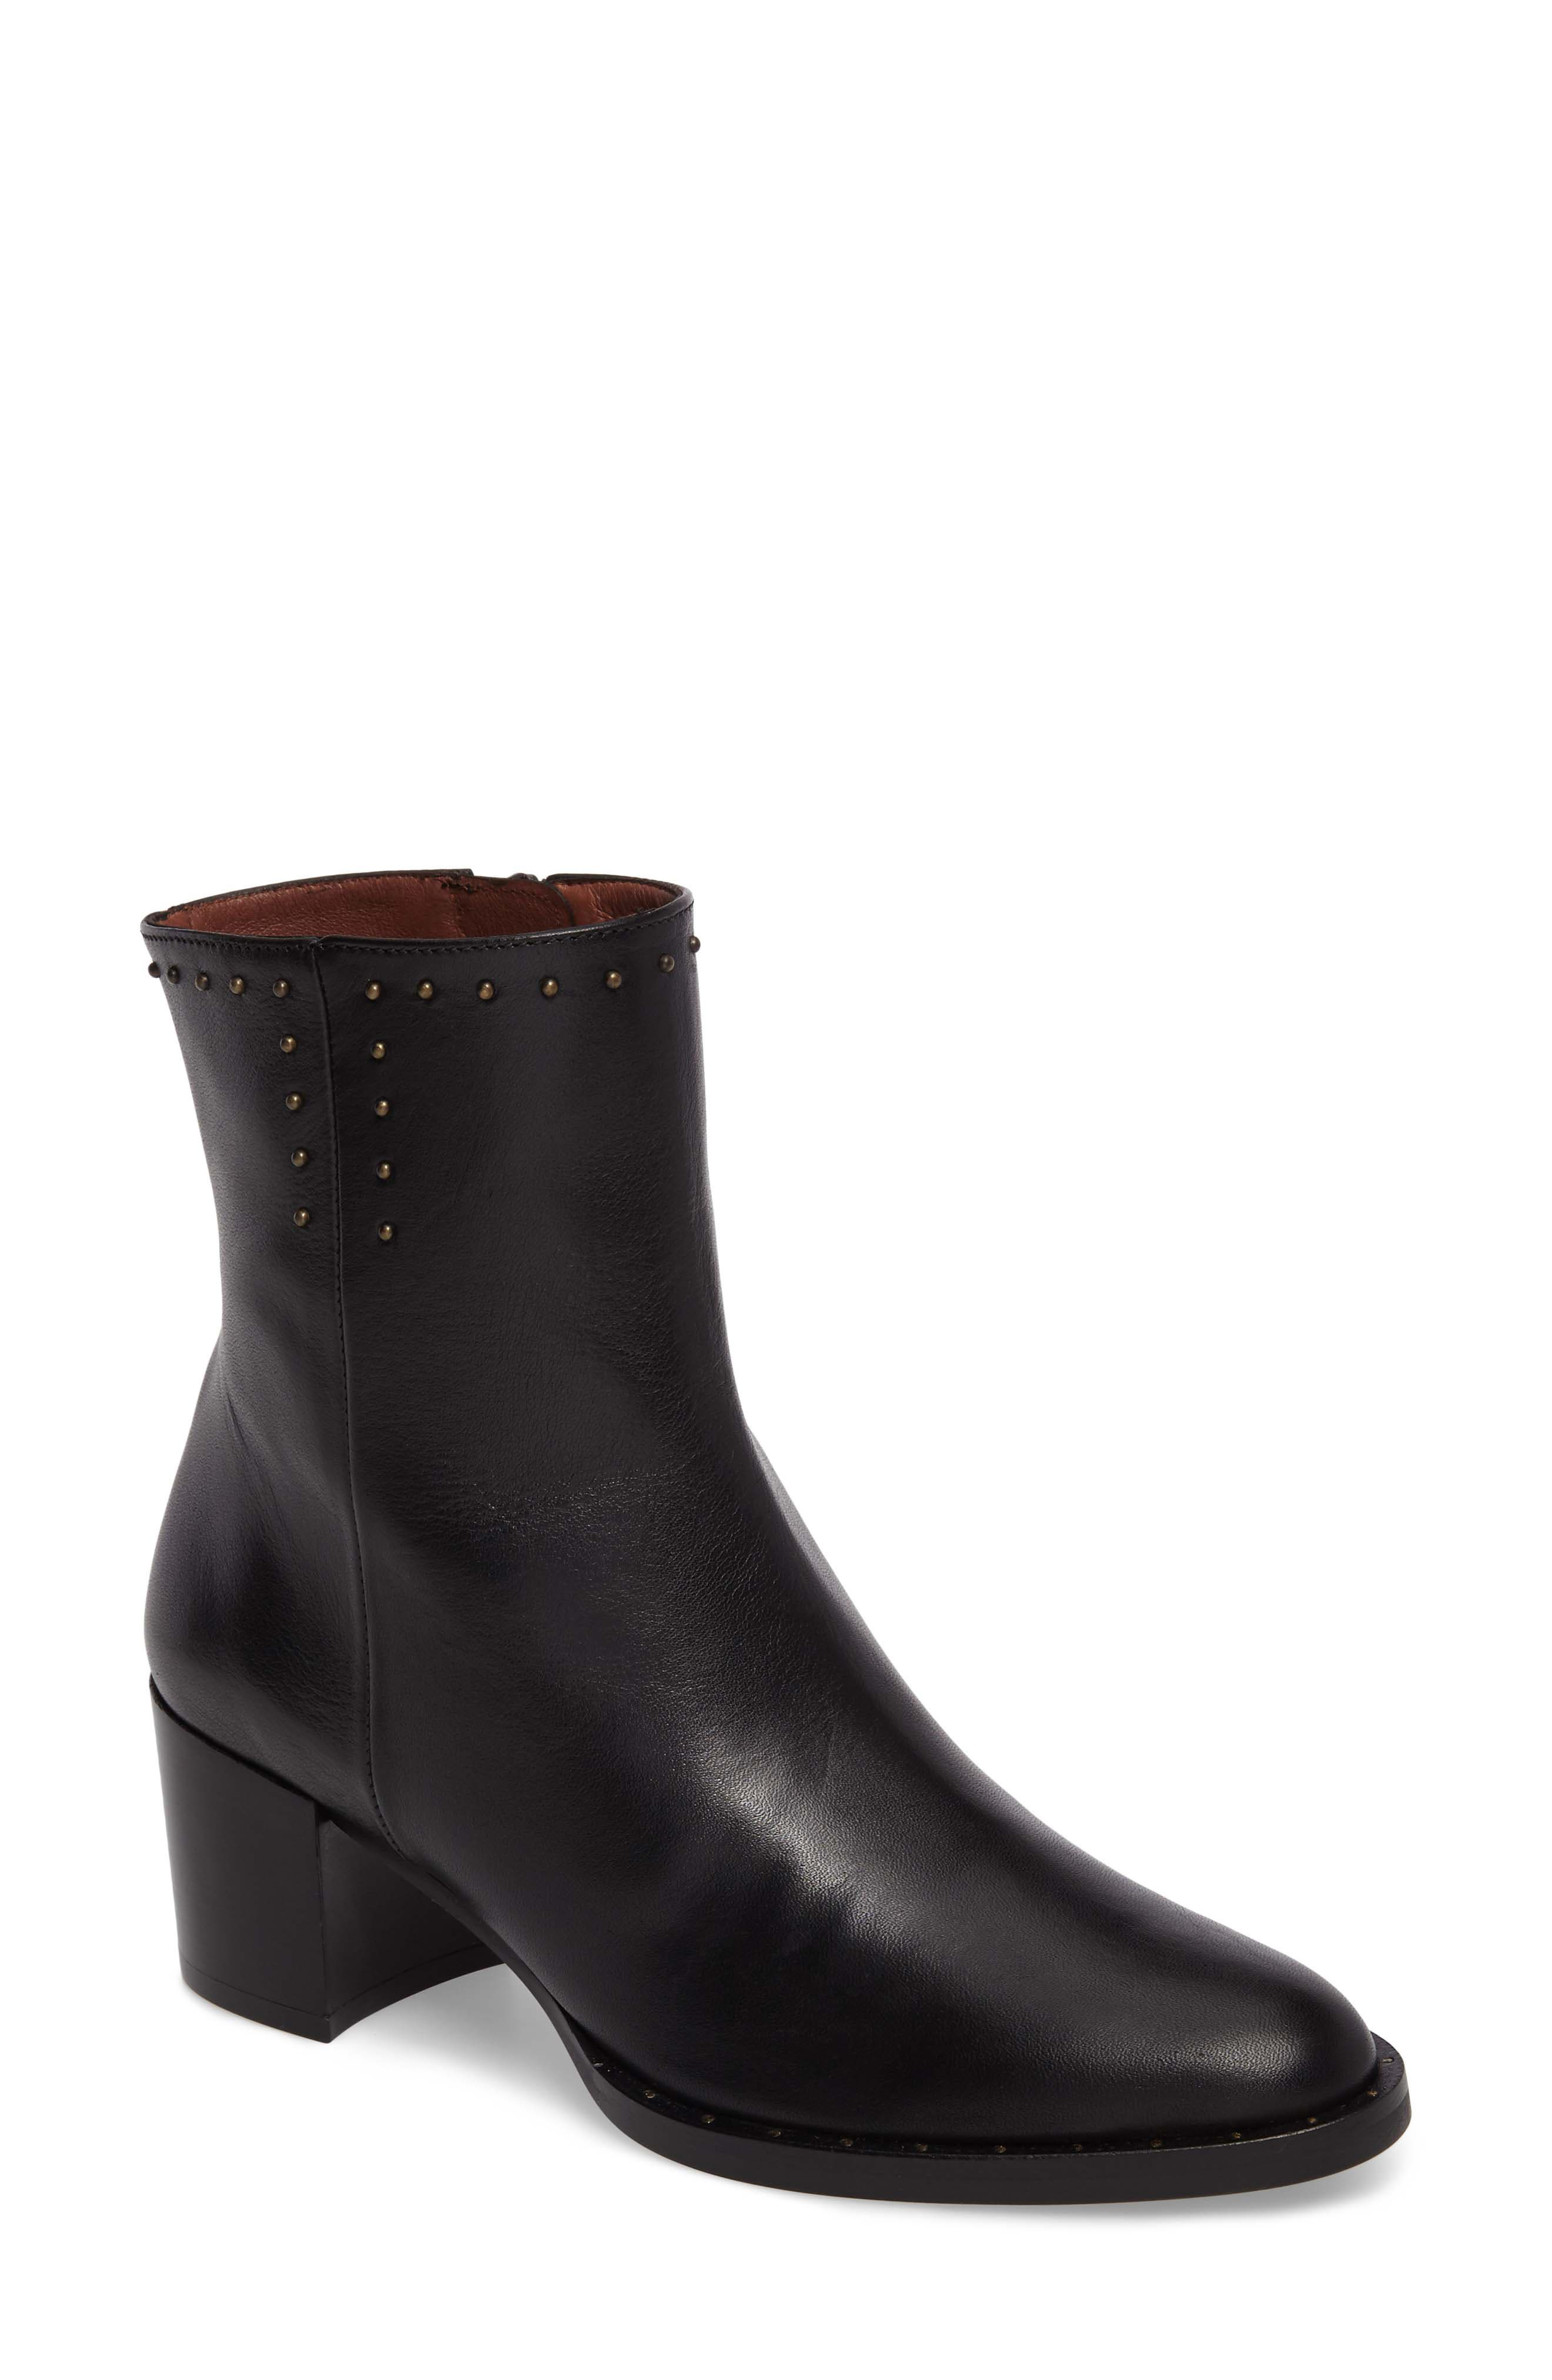 HISPANITAS Dawn Bootie, Main, color, SOHO BLACK LEATHER